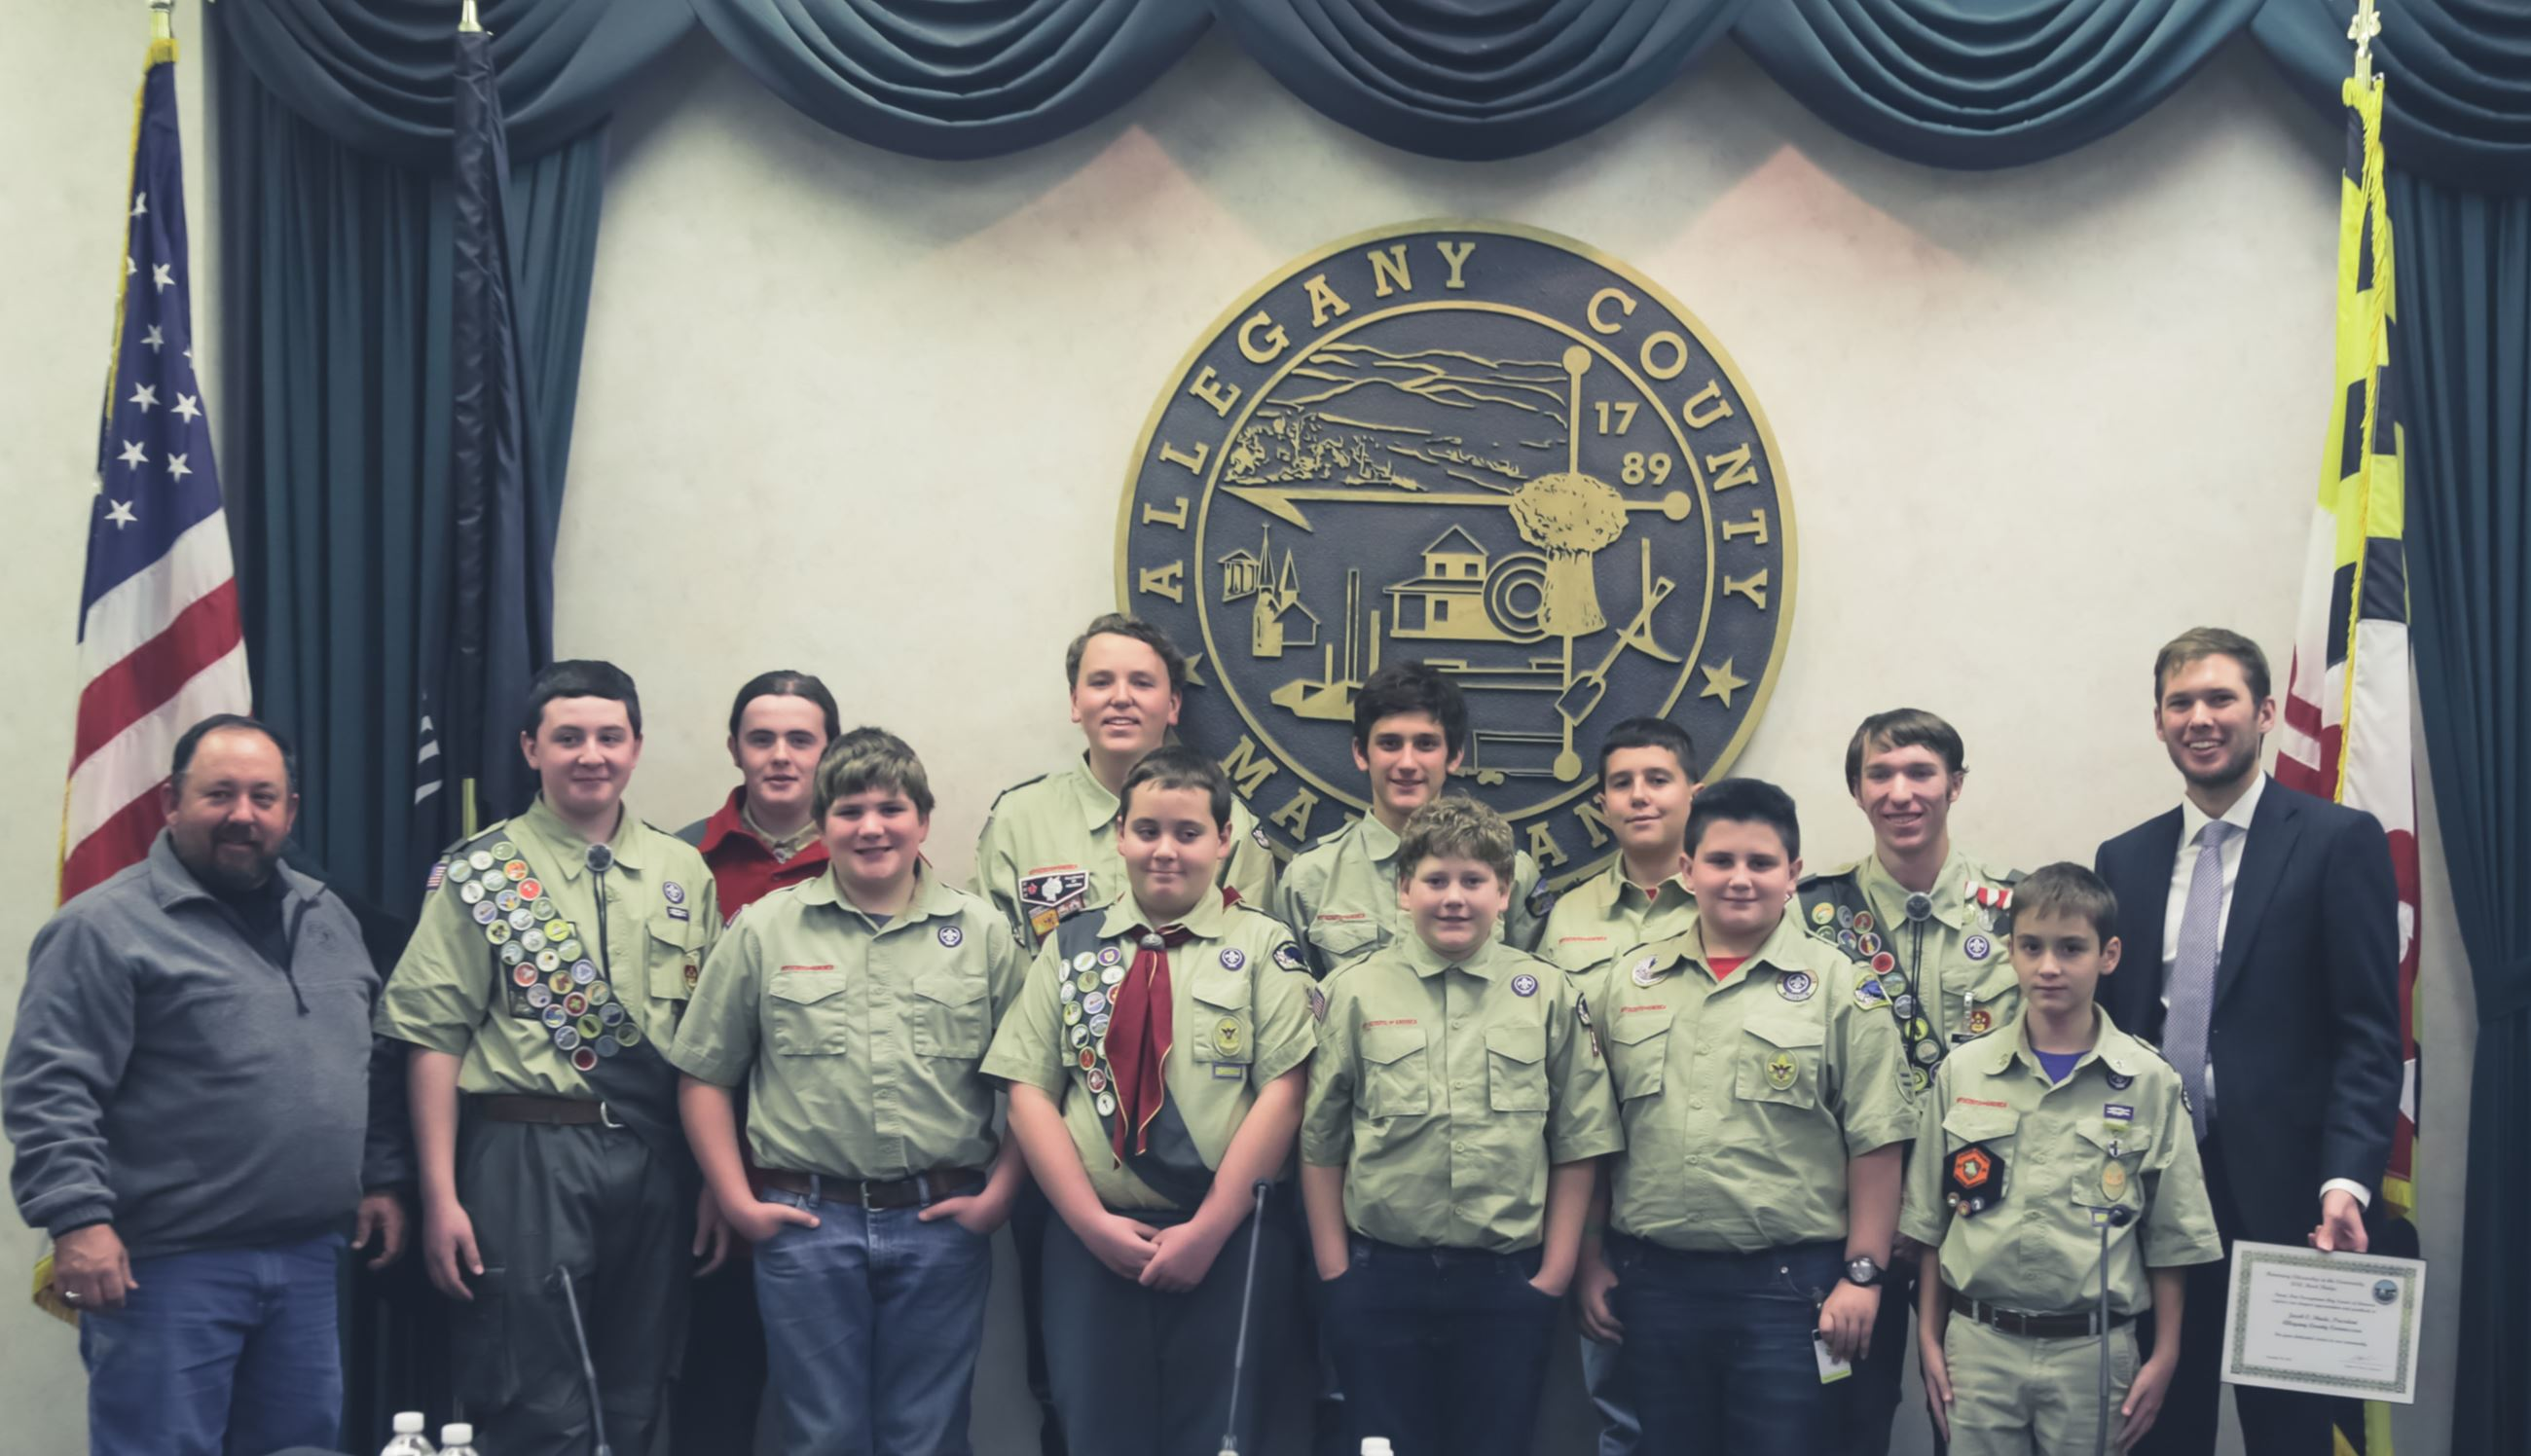 Citizenship in the Community Merit Badge Photo